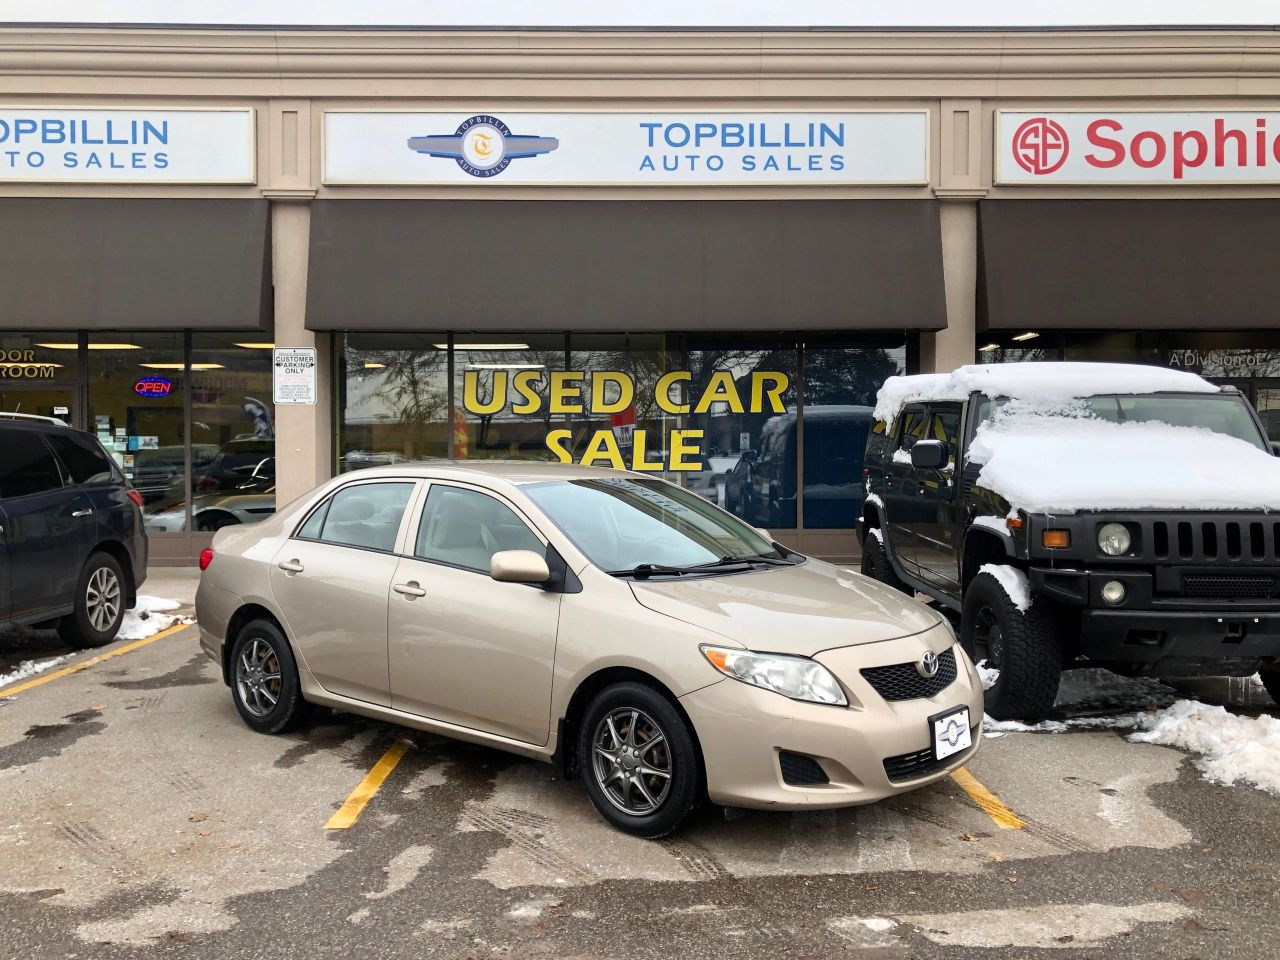 2009 Toyota Corolla CE Auto, 2 Years Powertrain Warranty